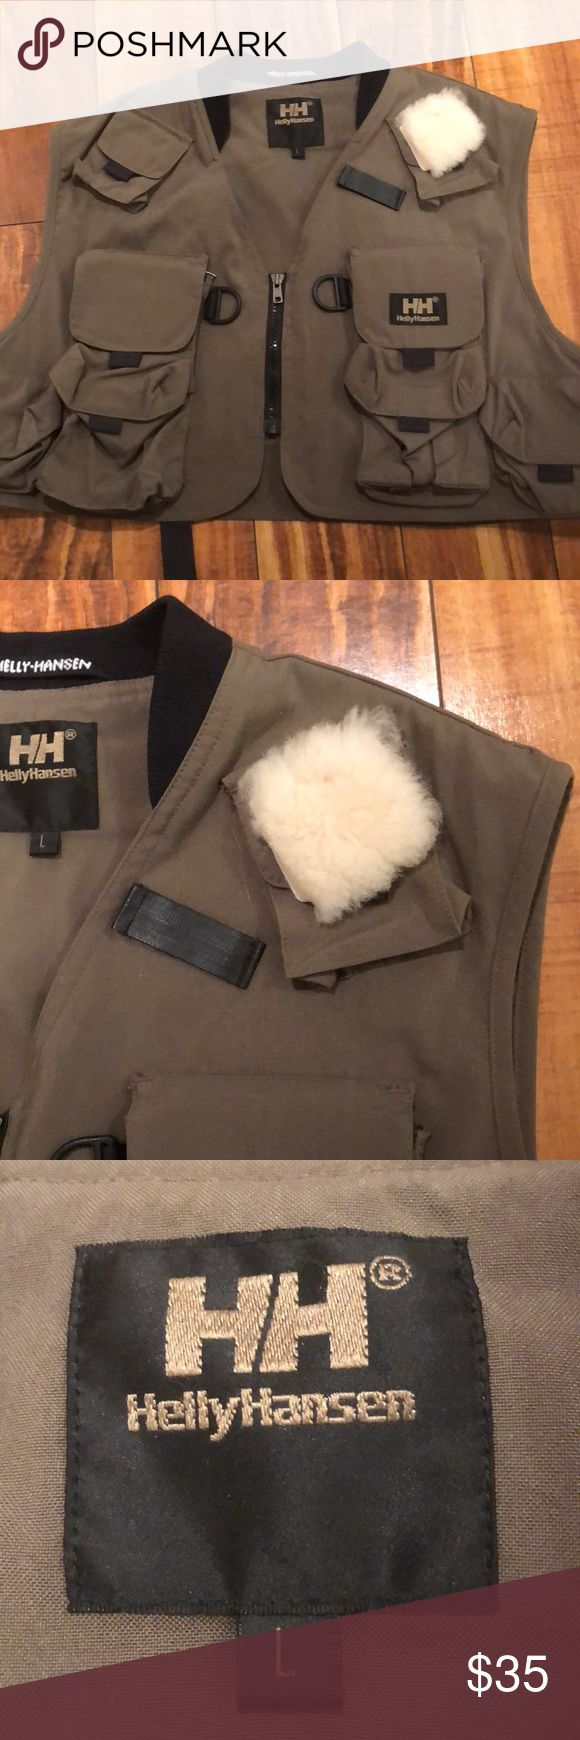 Helly Hansen paratrooper vest. Get your grunge on! Paratrooper style vest with lots of pockets for your ammo, I mean makeup!  💄 zips up front, zip pocket in back.  A fun look when you need to be ferocious. Helly Hansen Jackets & Coats Vests